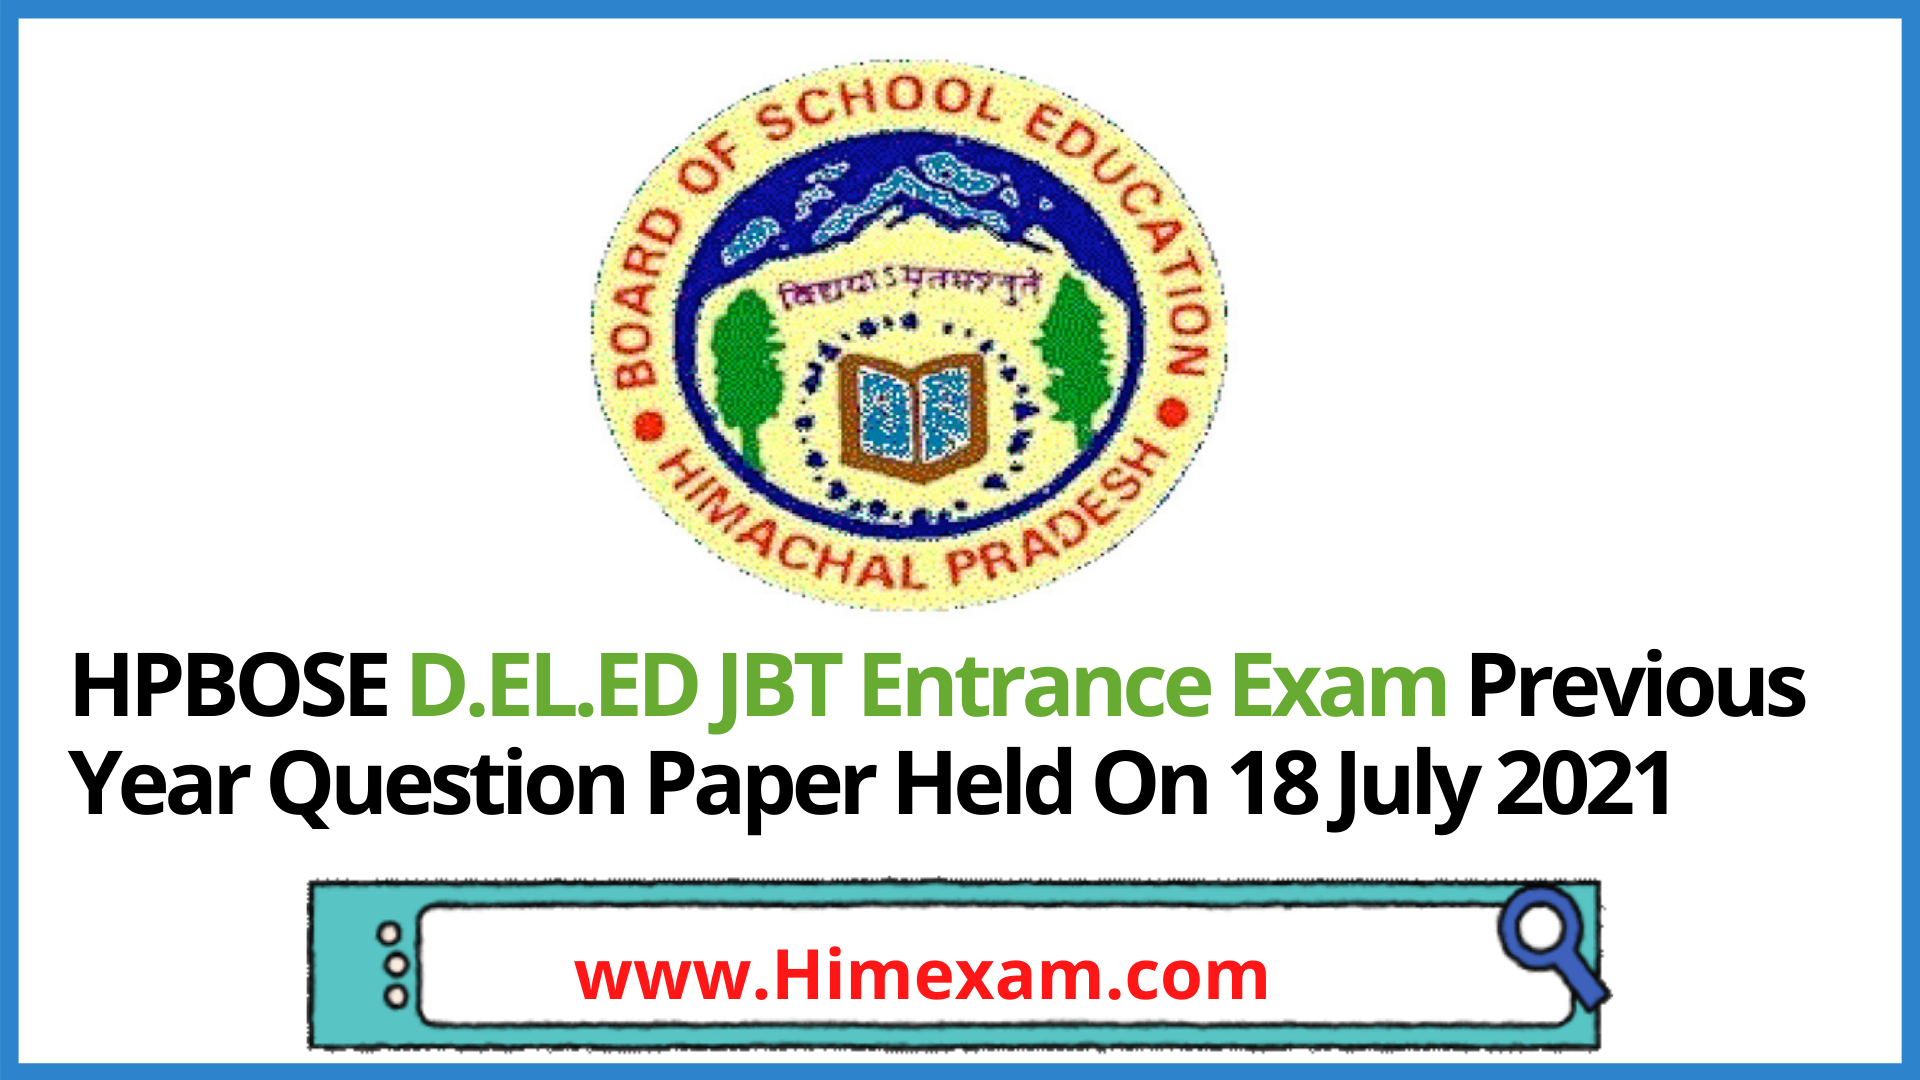 HPBOSE D.EL.ED JBT Entrance Exam Previous Year Question Paper Held On 18 July 2021